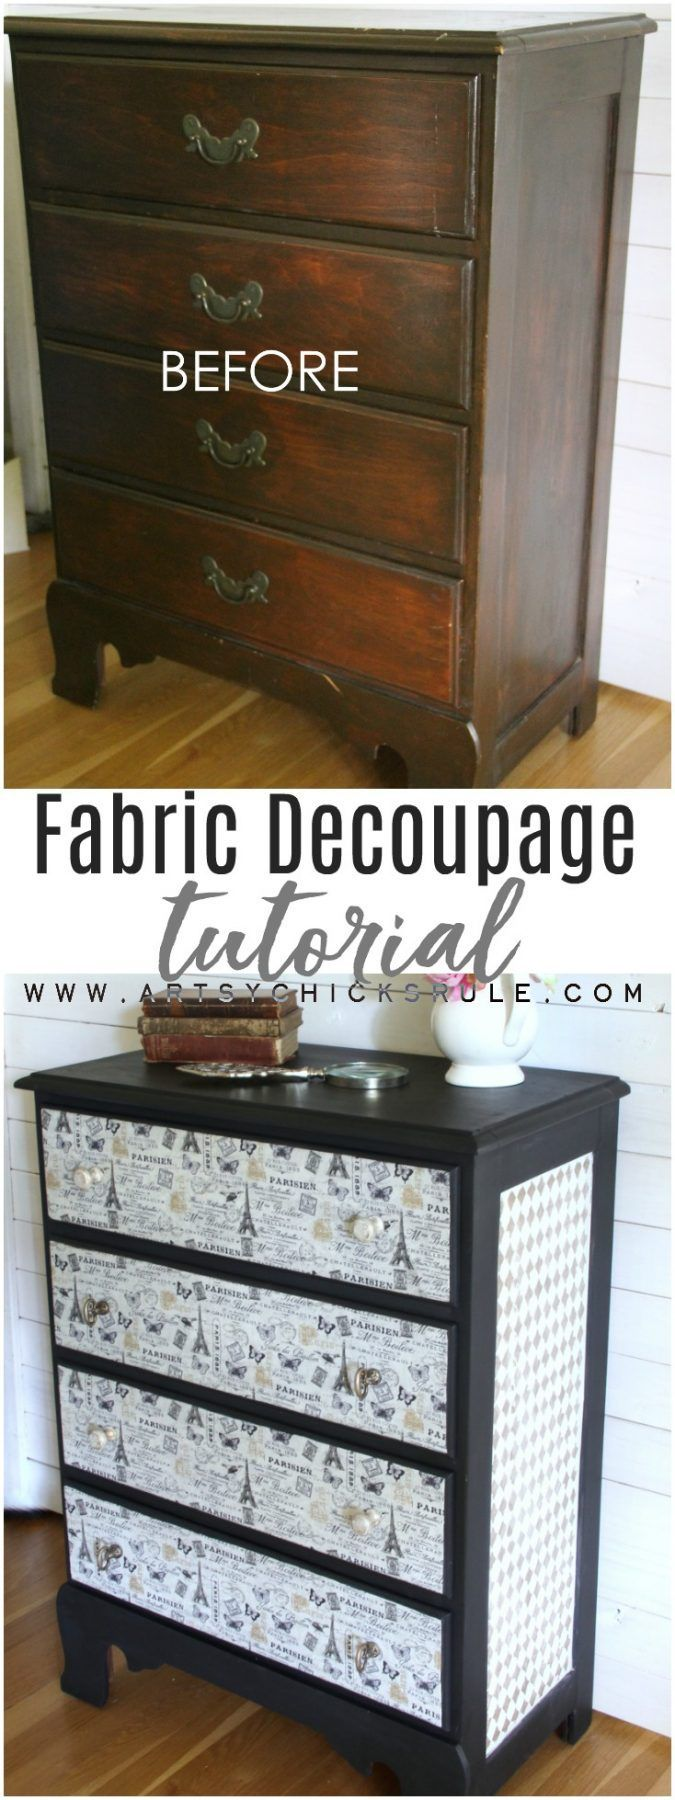 Love this! French Fabric Decoupage Tutorial - artsychicksrule.com #fabricdecoupa...